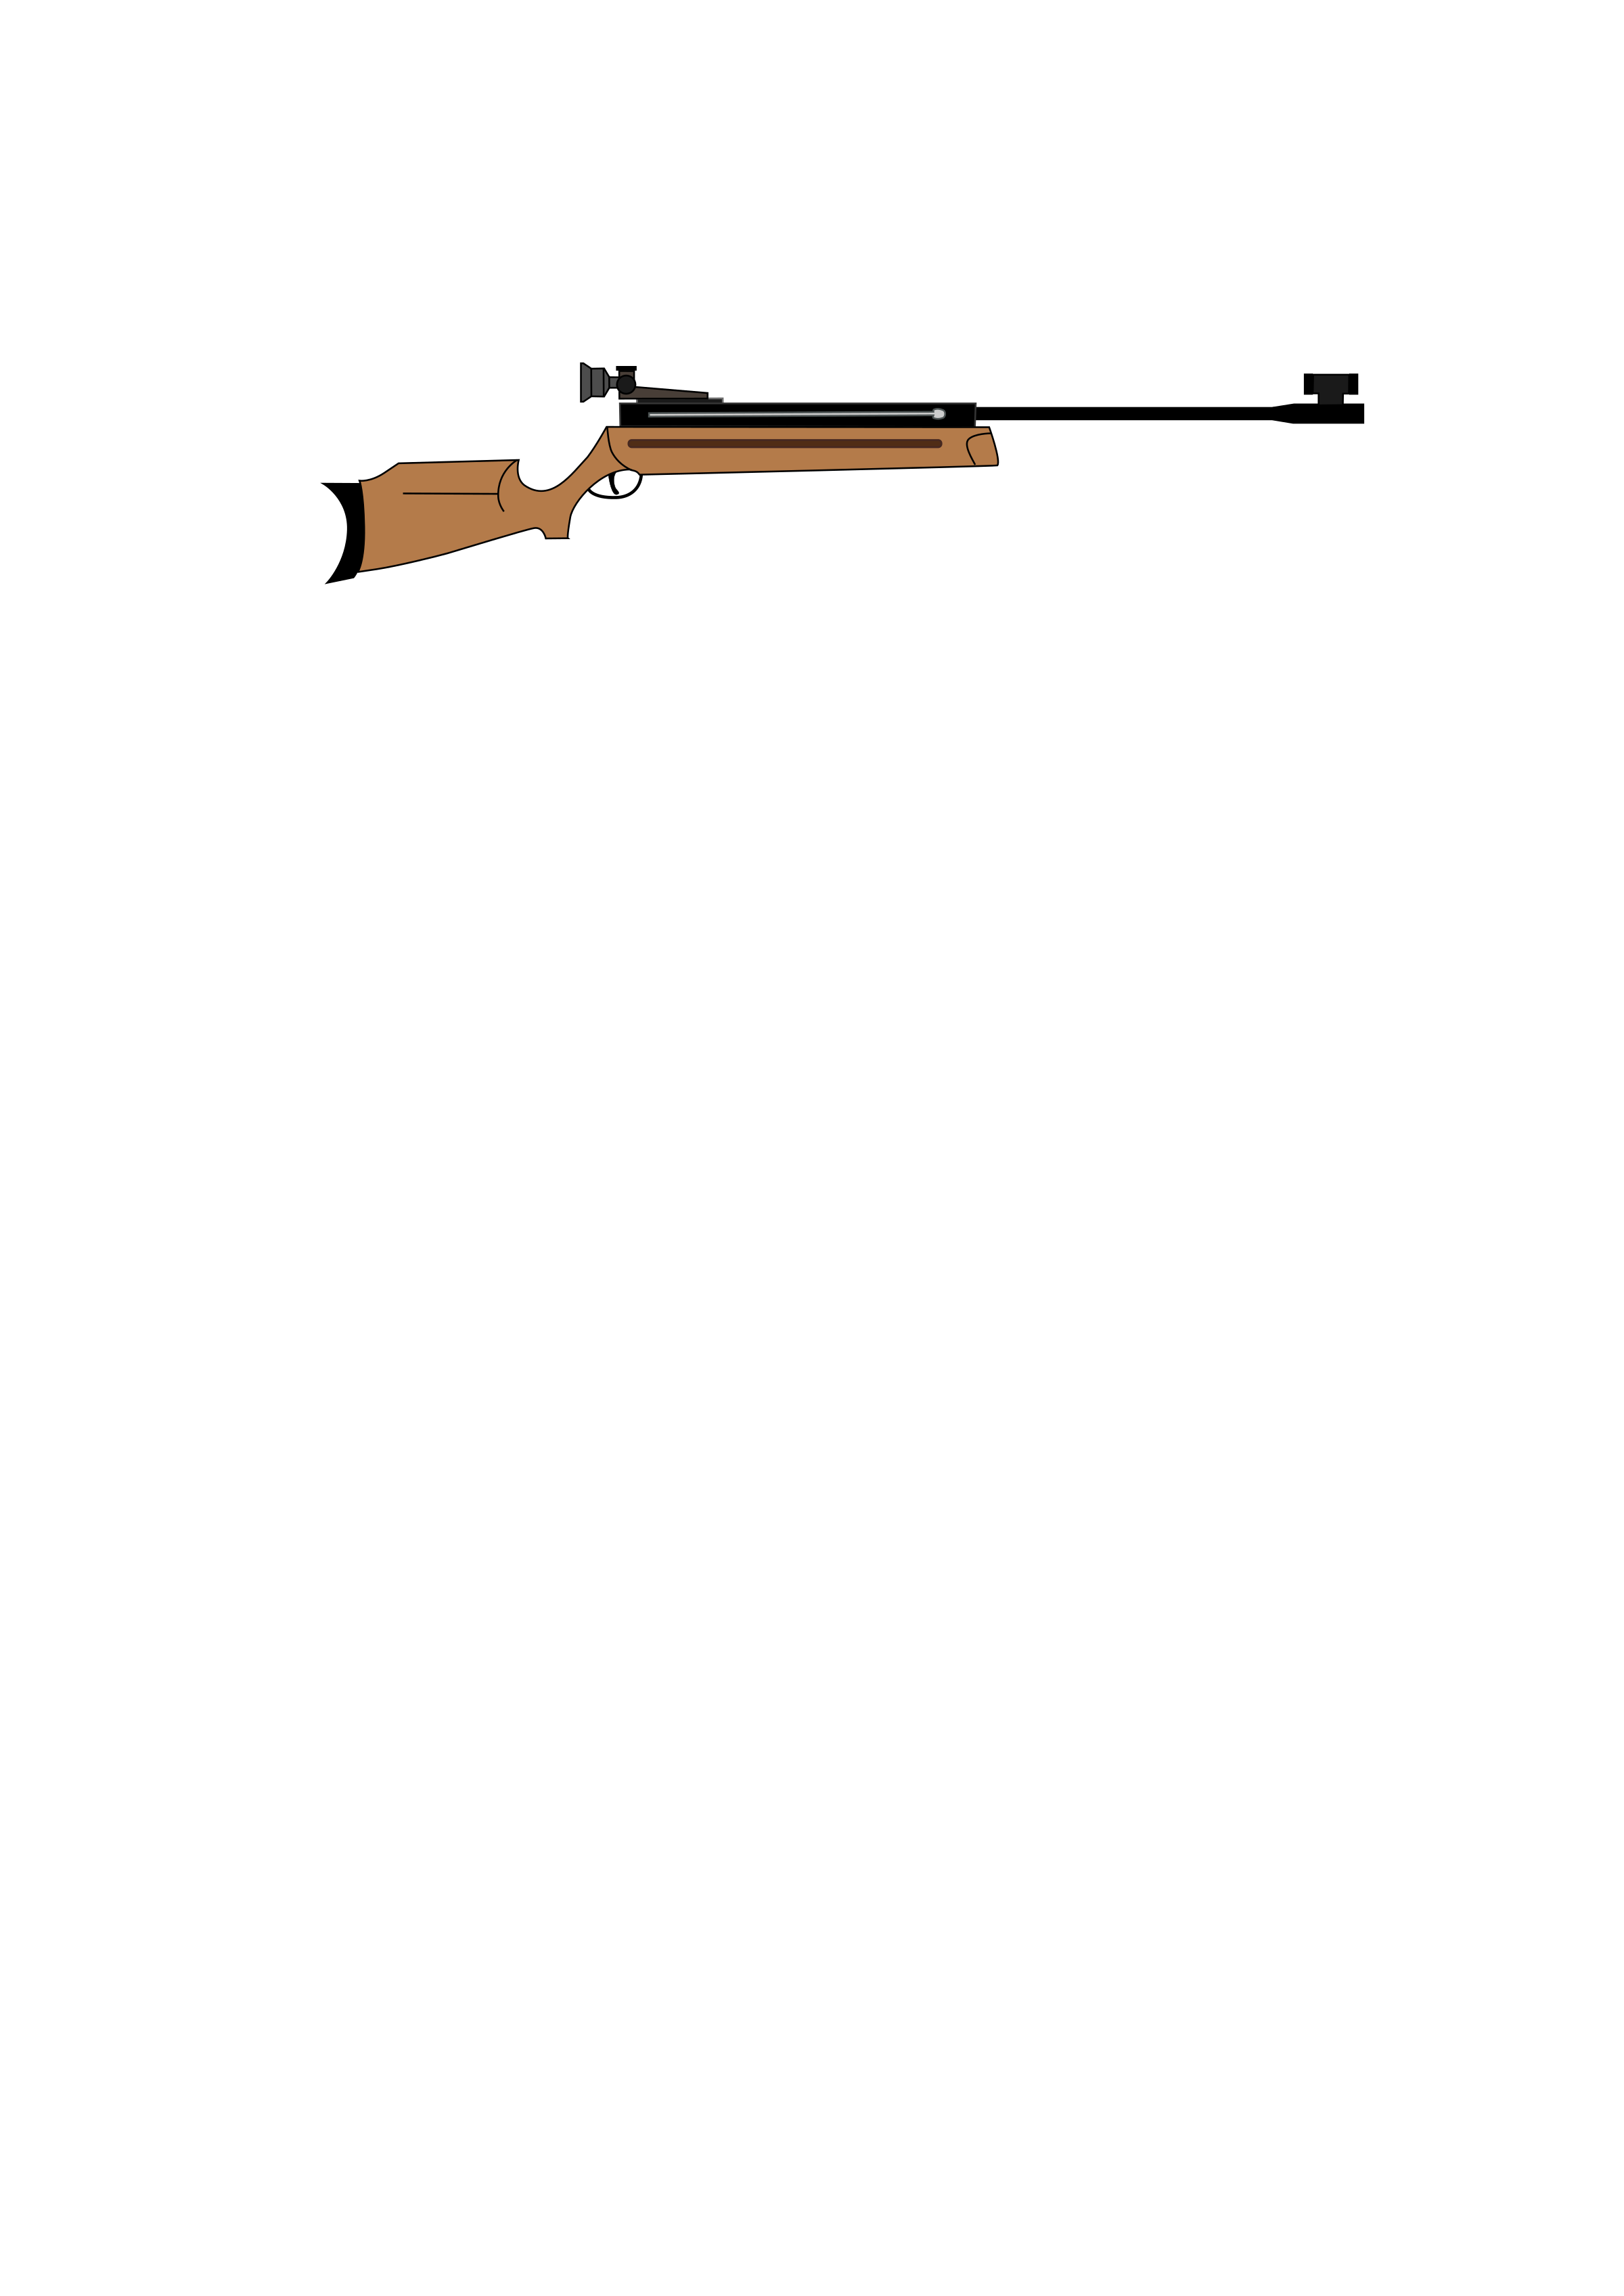 Clipart gun long gun. Air rifle big image